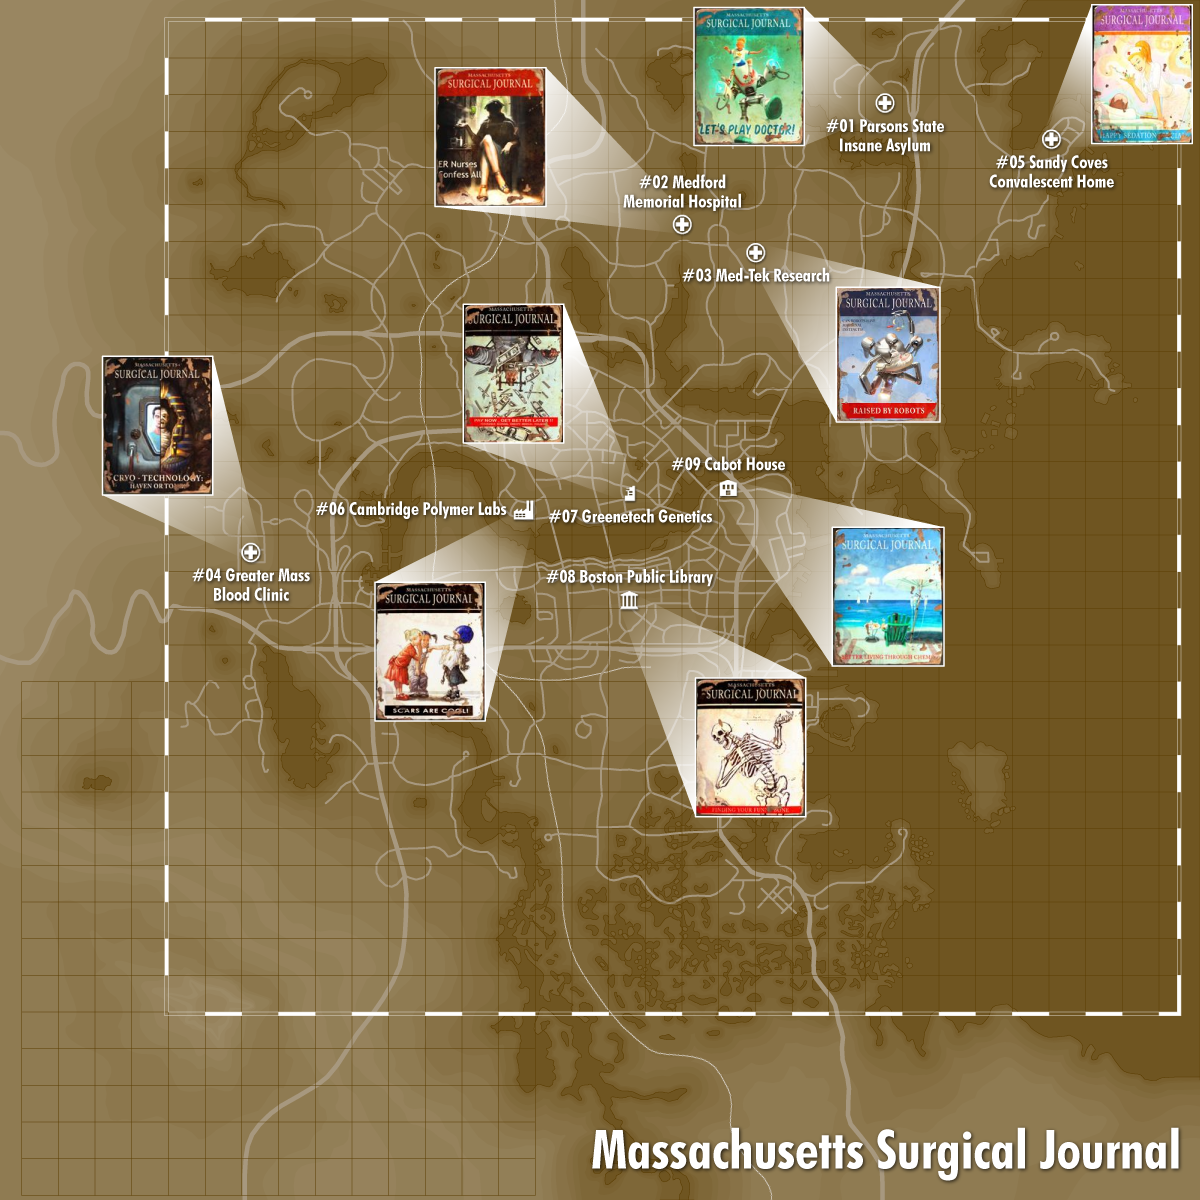 Surgical Journal Locations Mags Fallout4 Gaming Fallout Bethesda Games Ps4share Ps4 Fo4